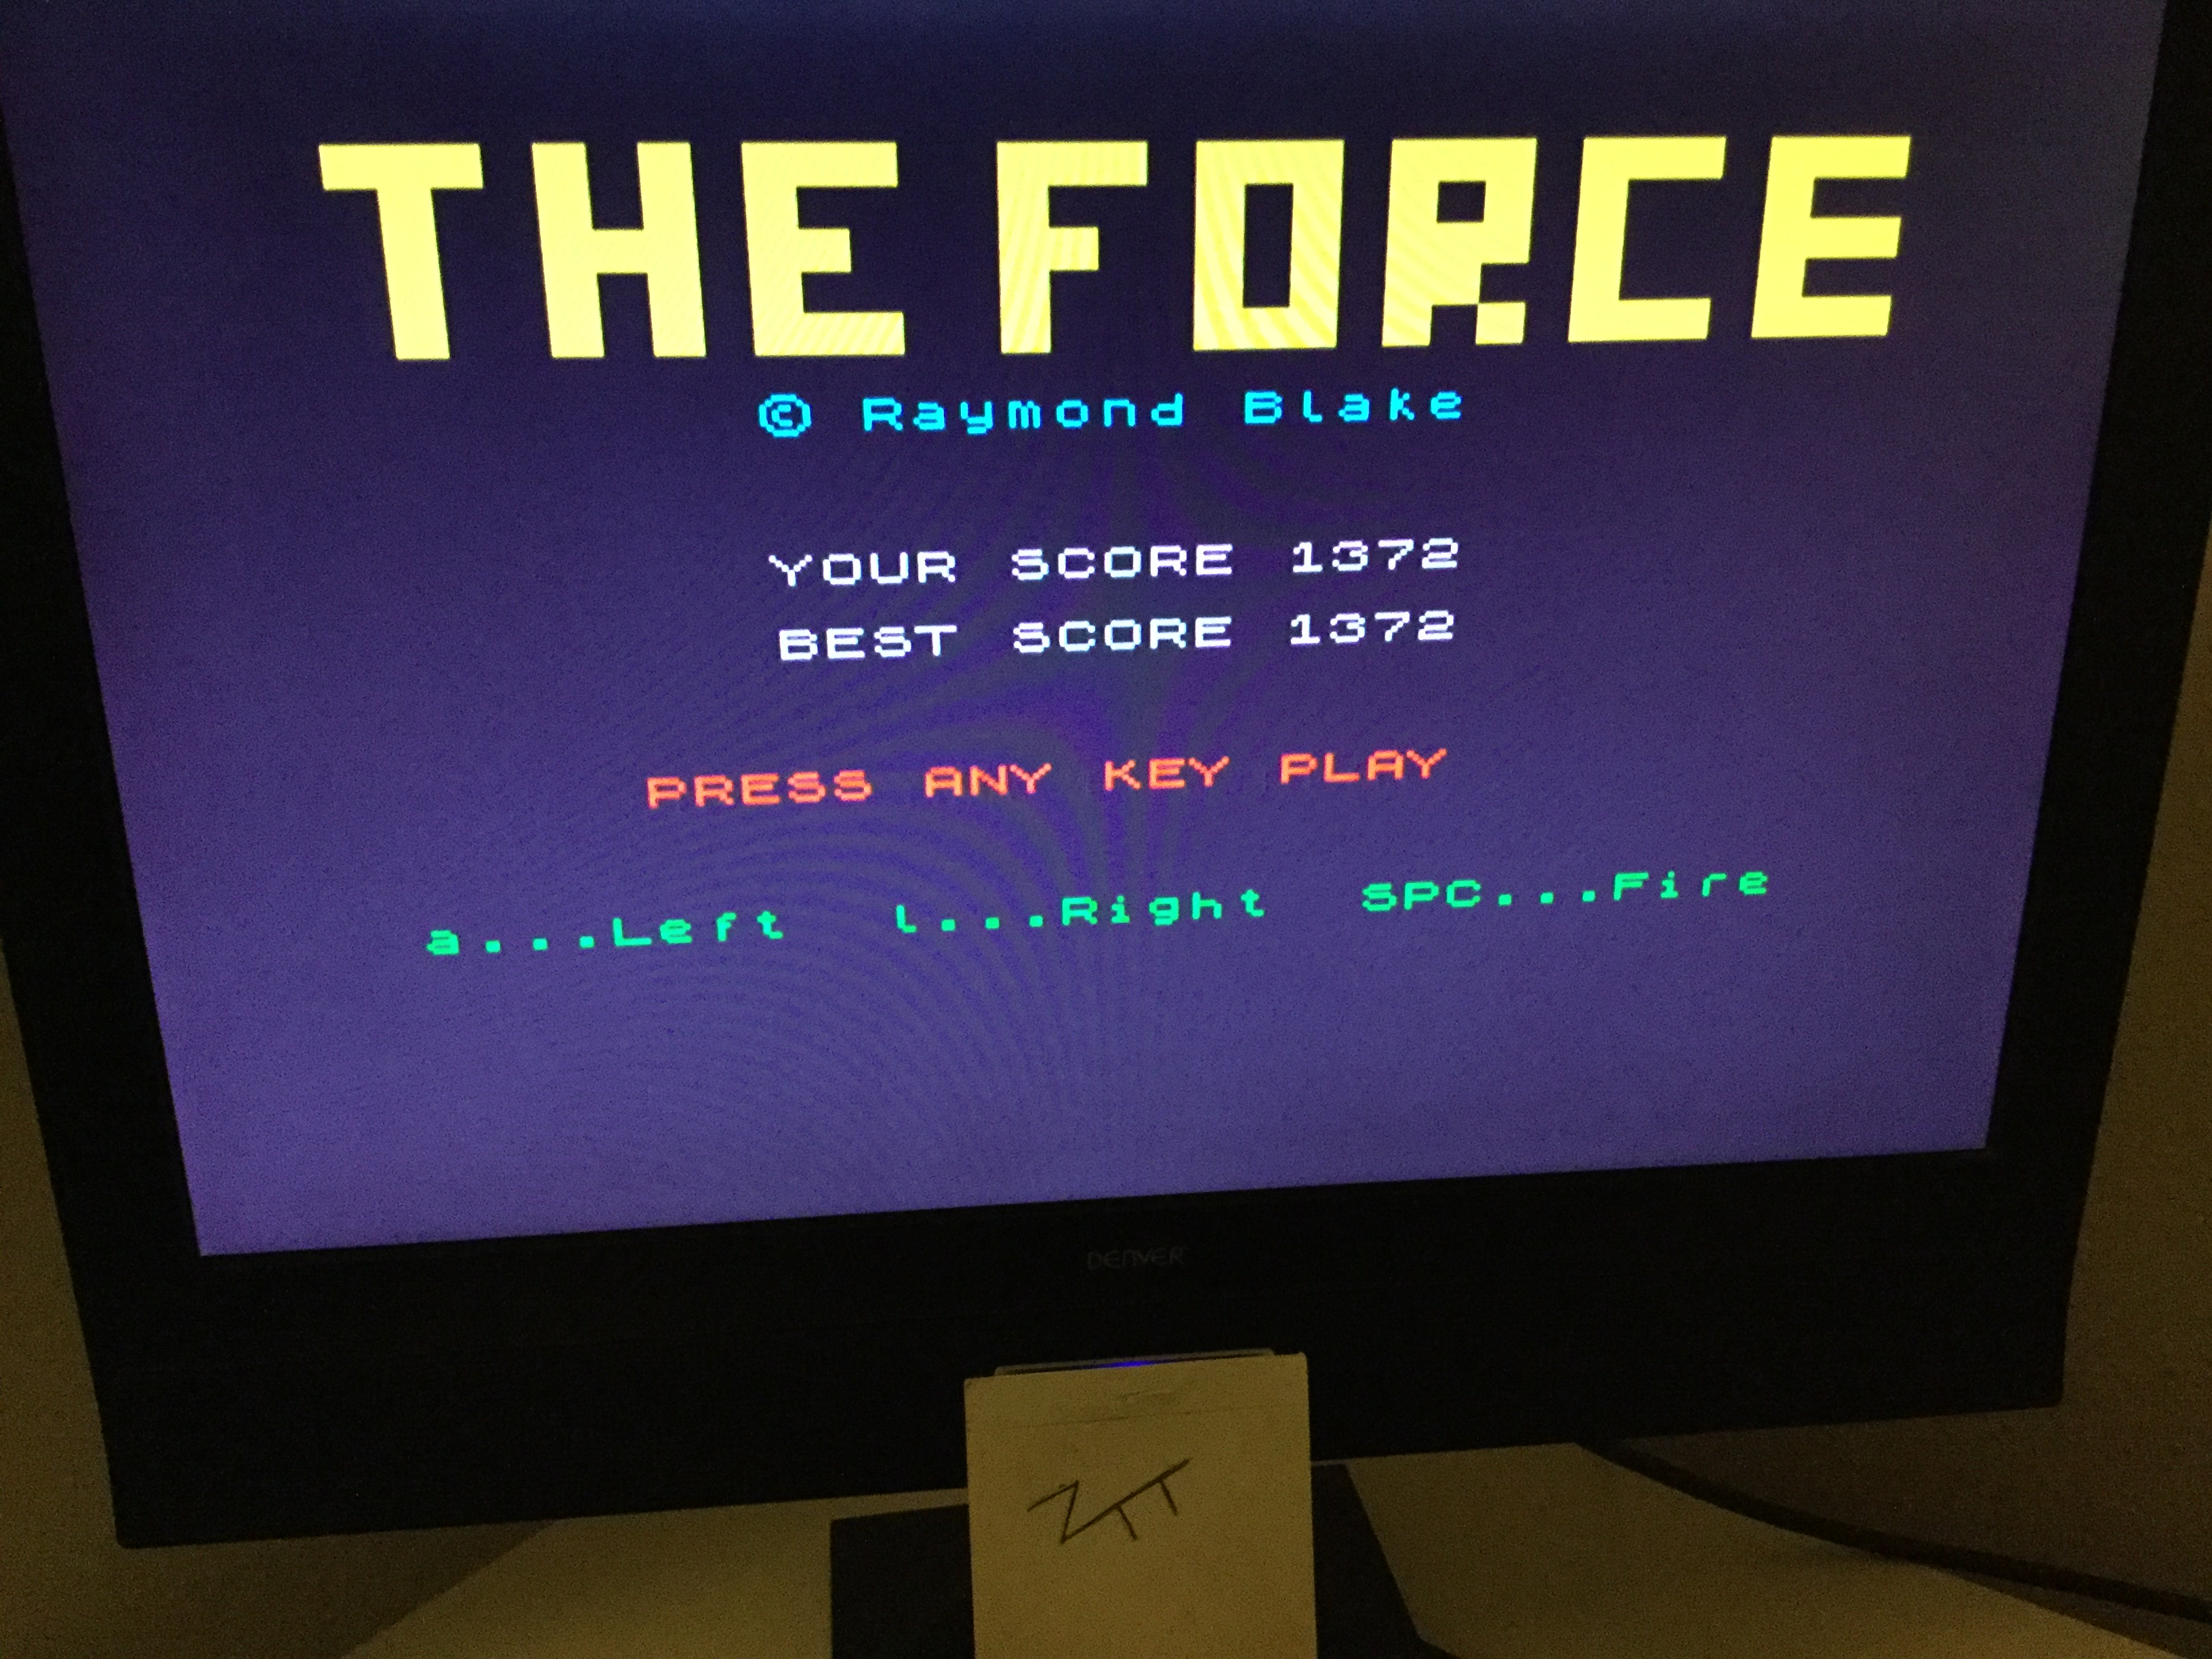 Frankie: The Force [Fontana Publishing] (ZX Spectrum) 1,372 points on 2019-10-12 04:32:14